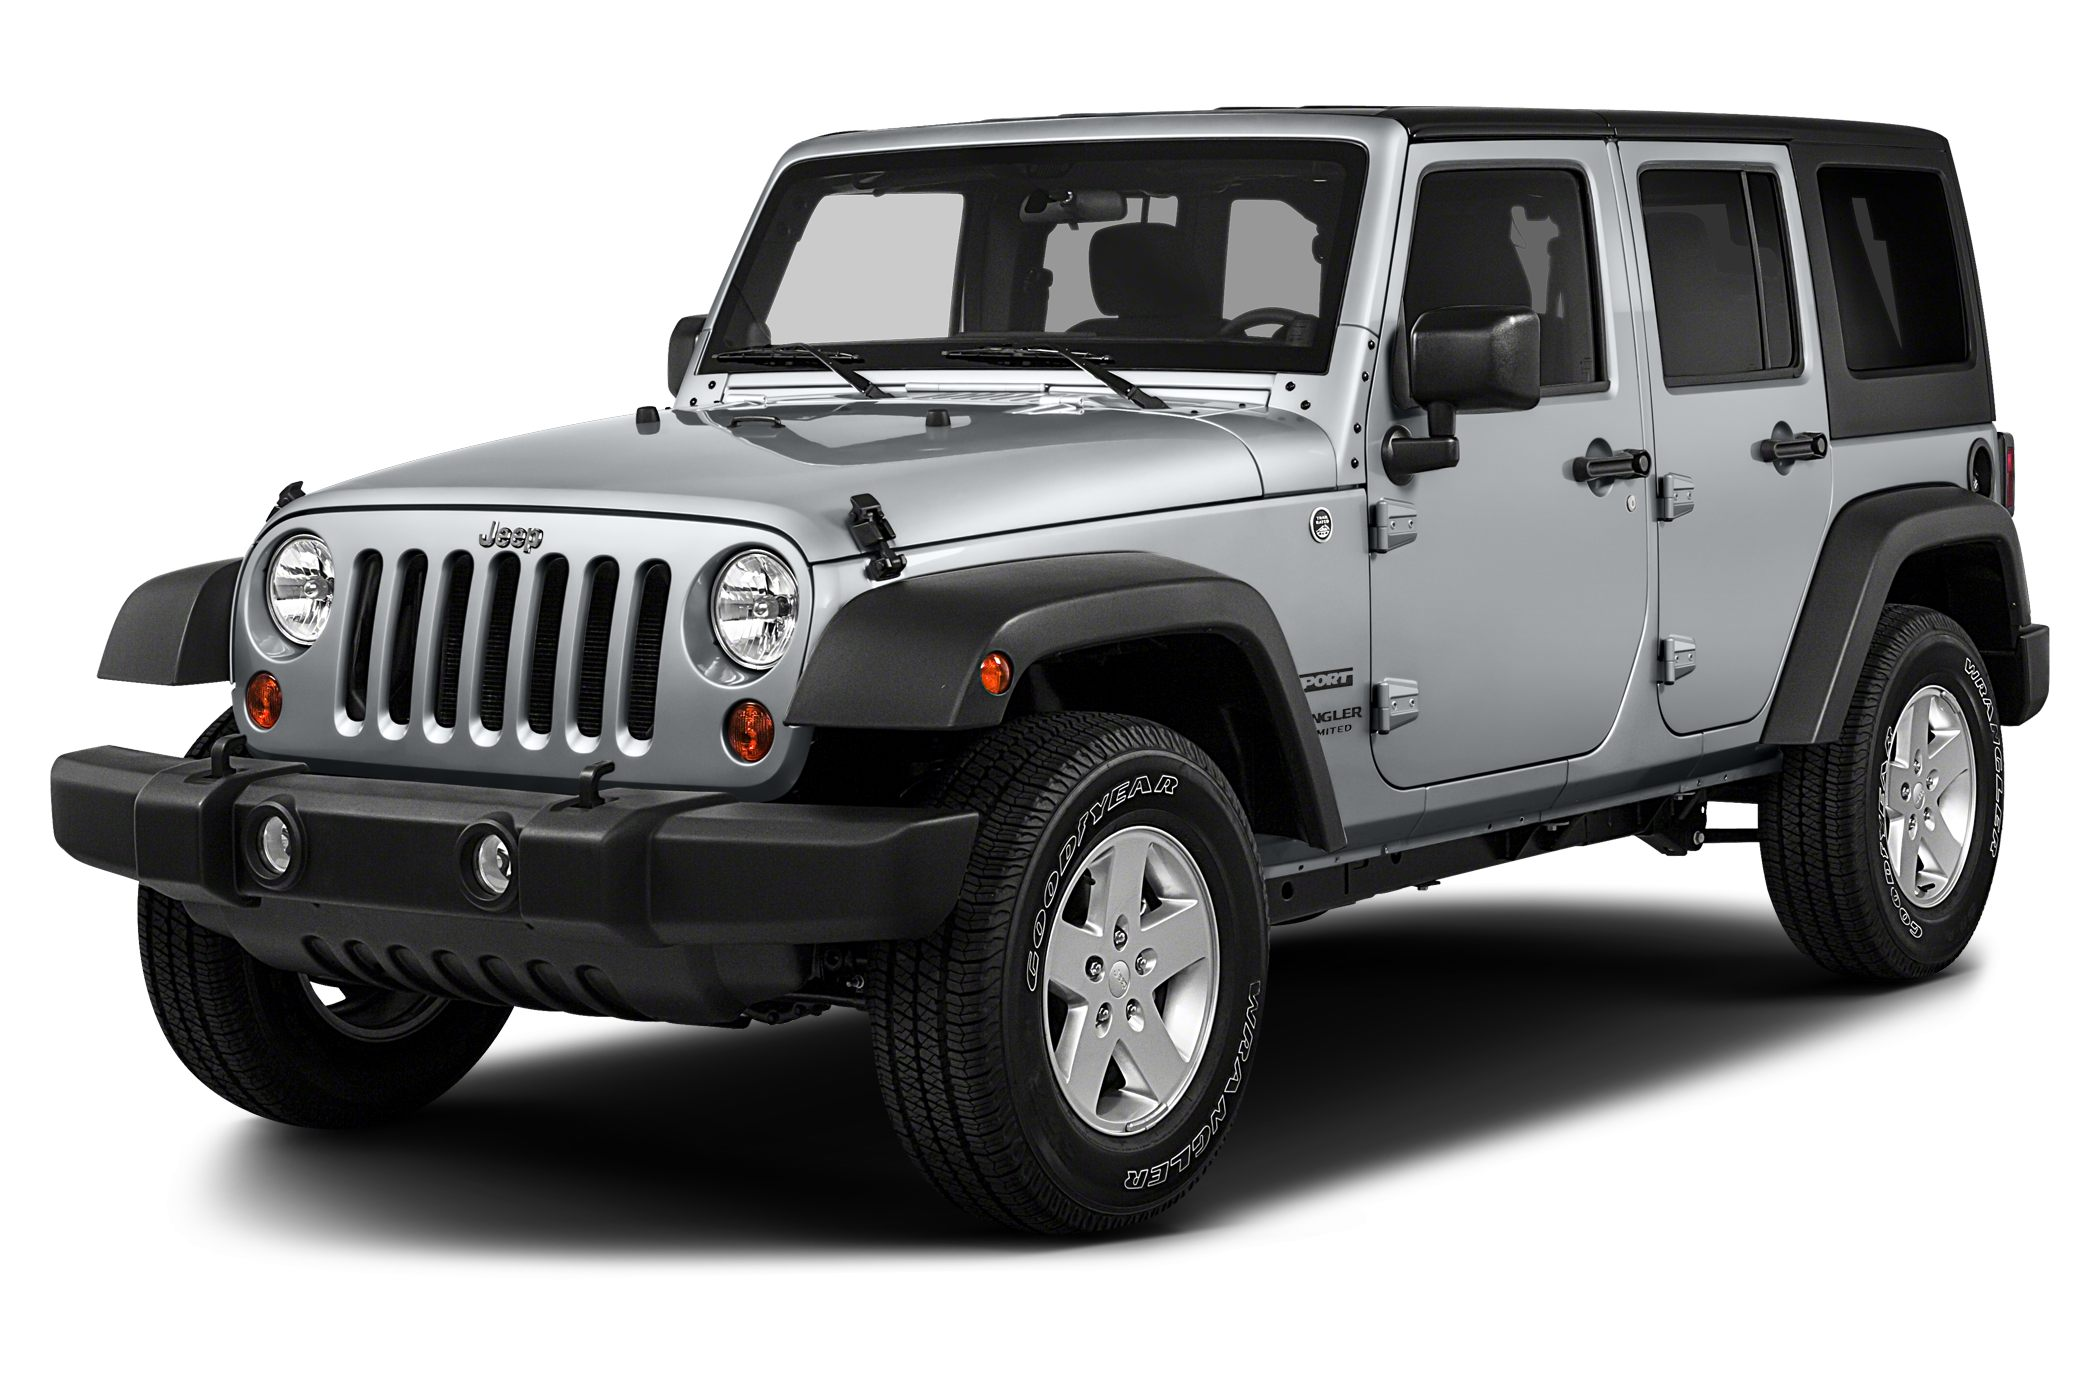 2016 Jeep Wrangler Unlimited Sport New Price CARFAX One-Owner Gray 2016 Jeep Wrangler Unlimited